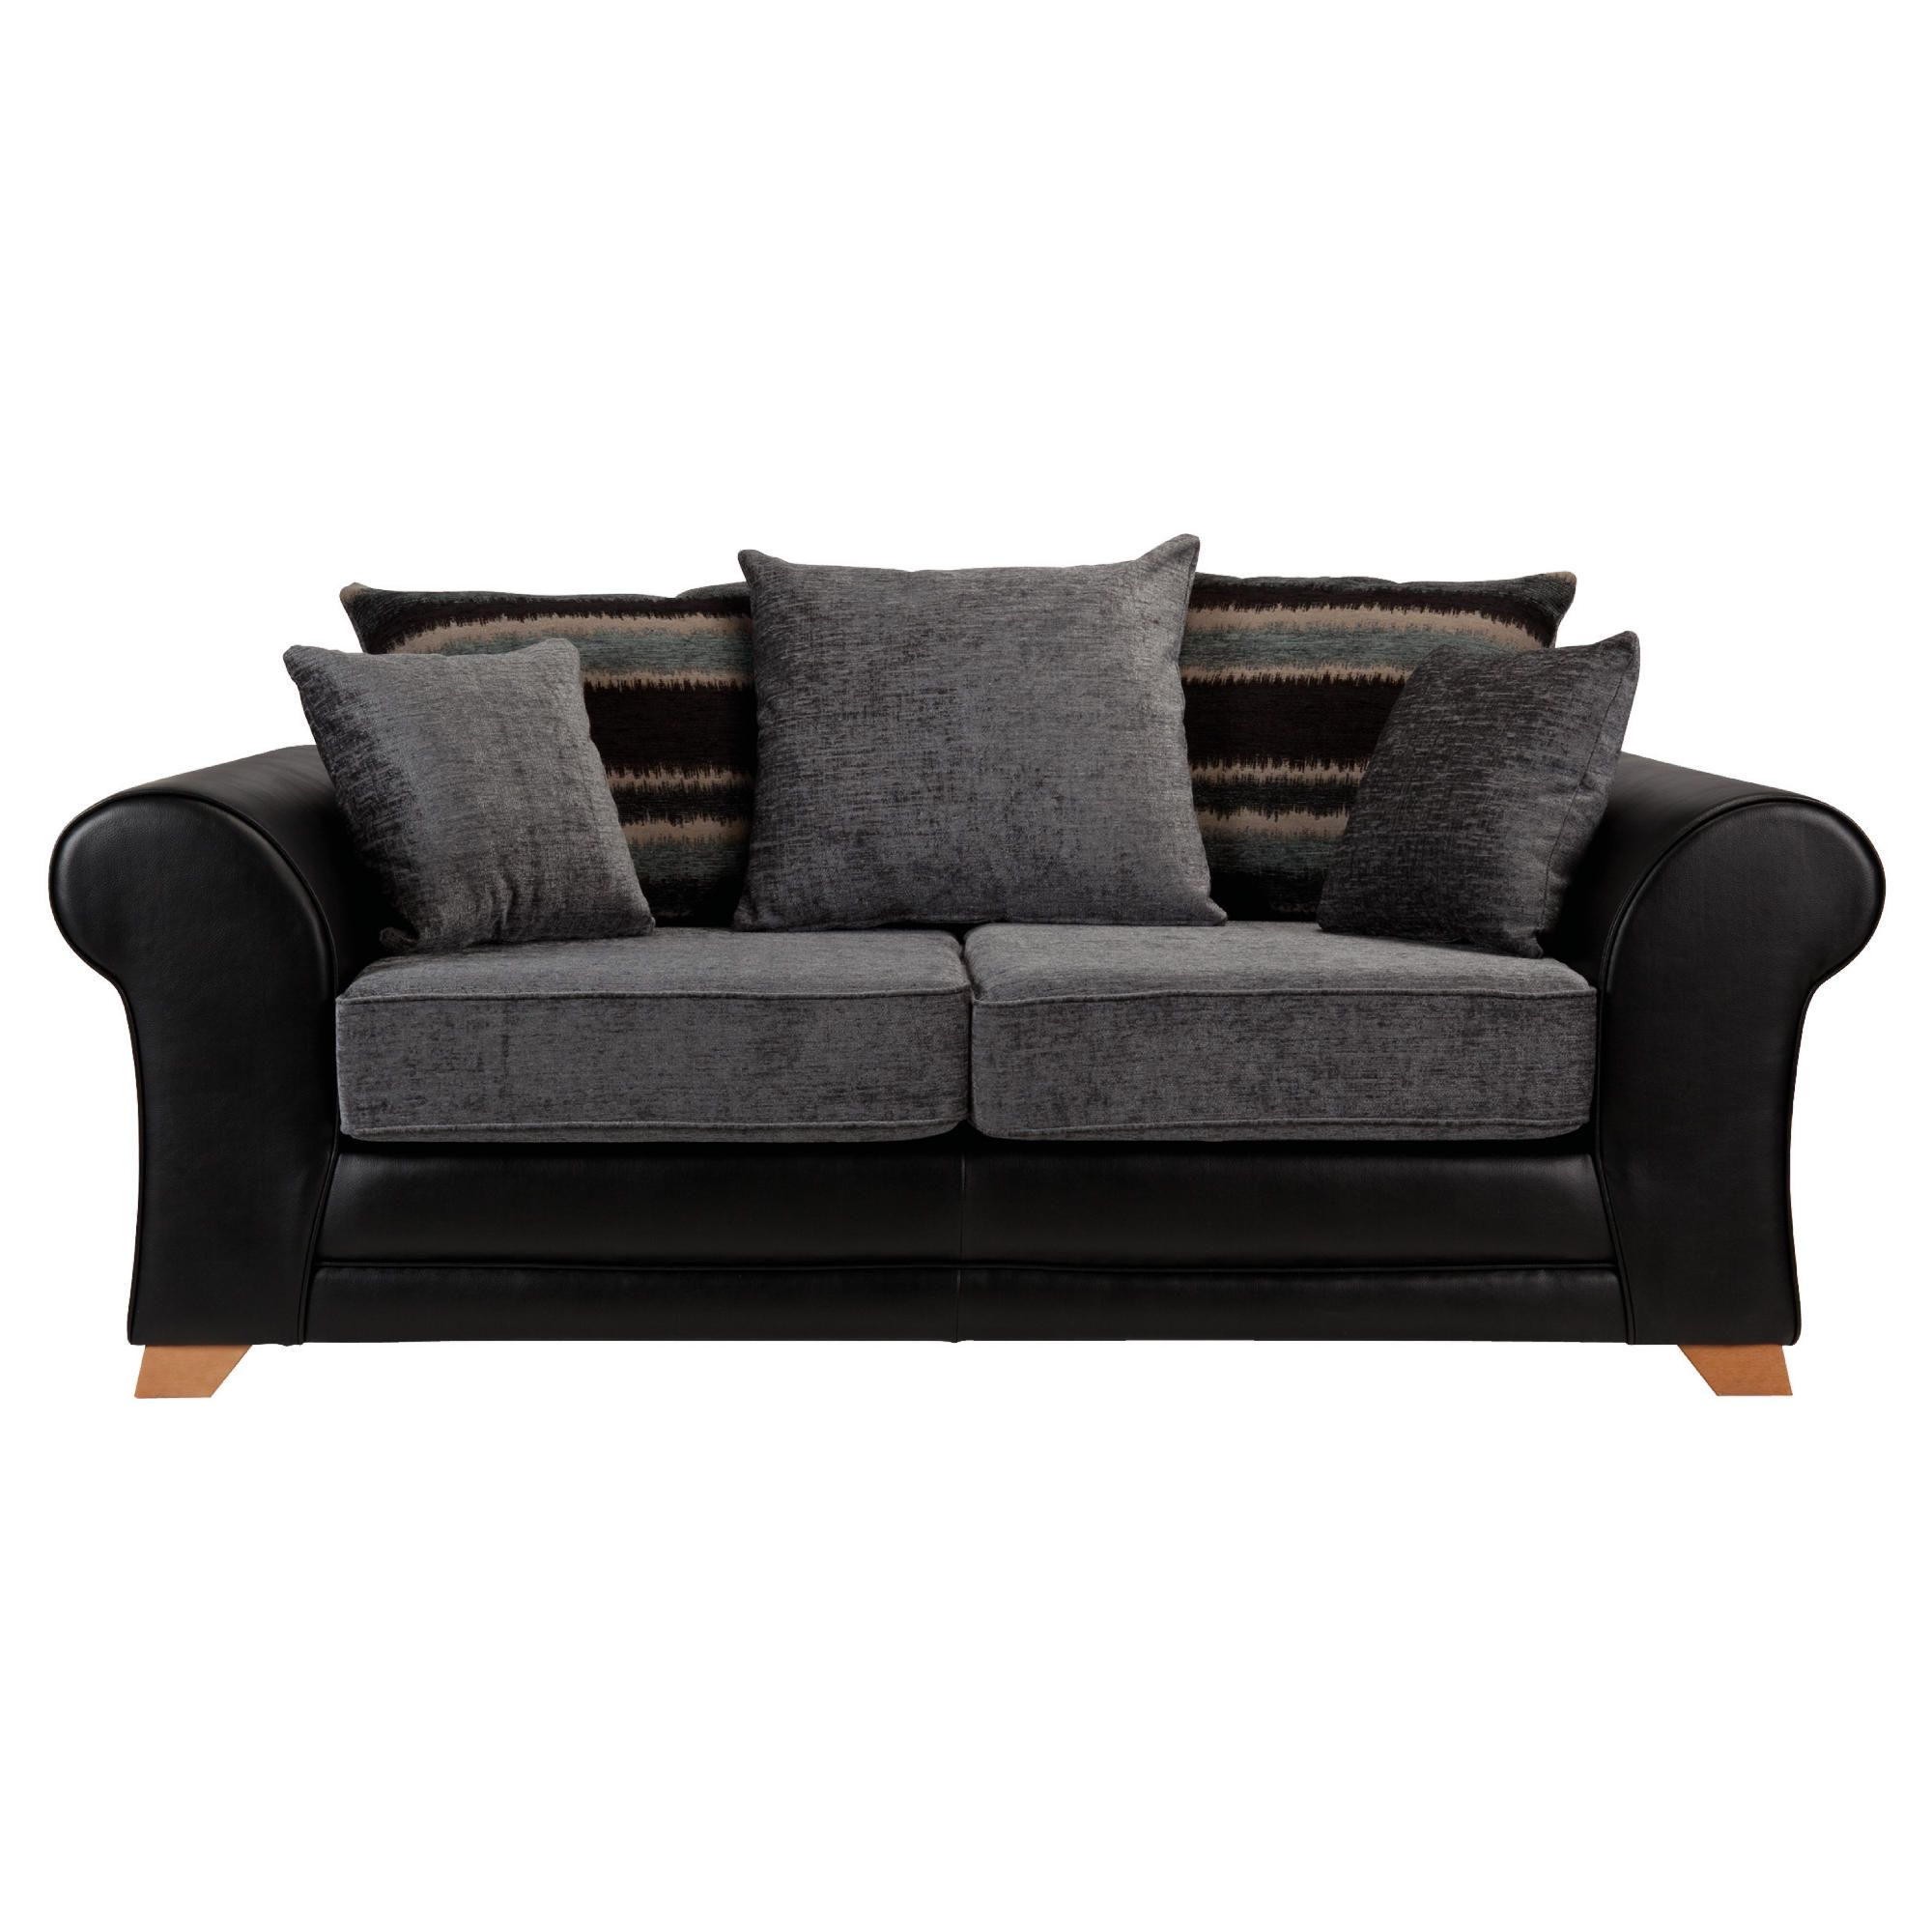 Lima fabric mix sofabed black and charcoal at Tesco Direct